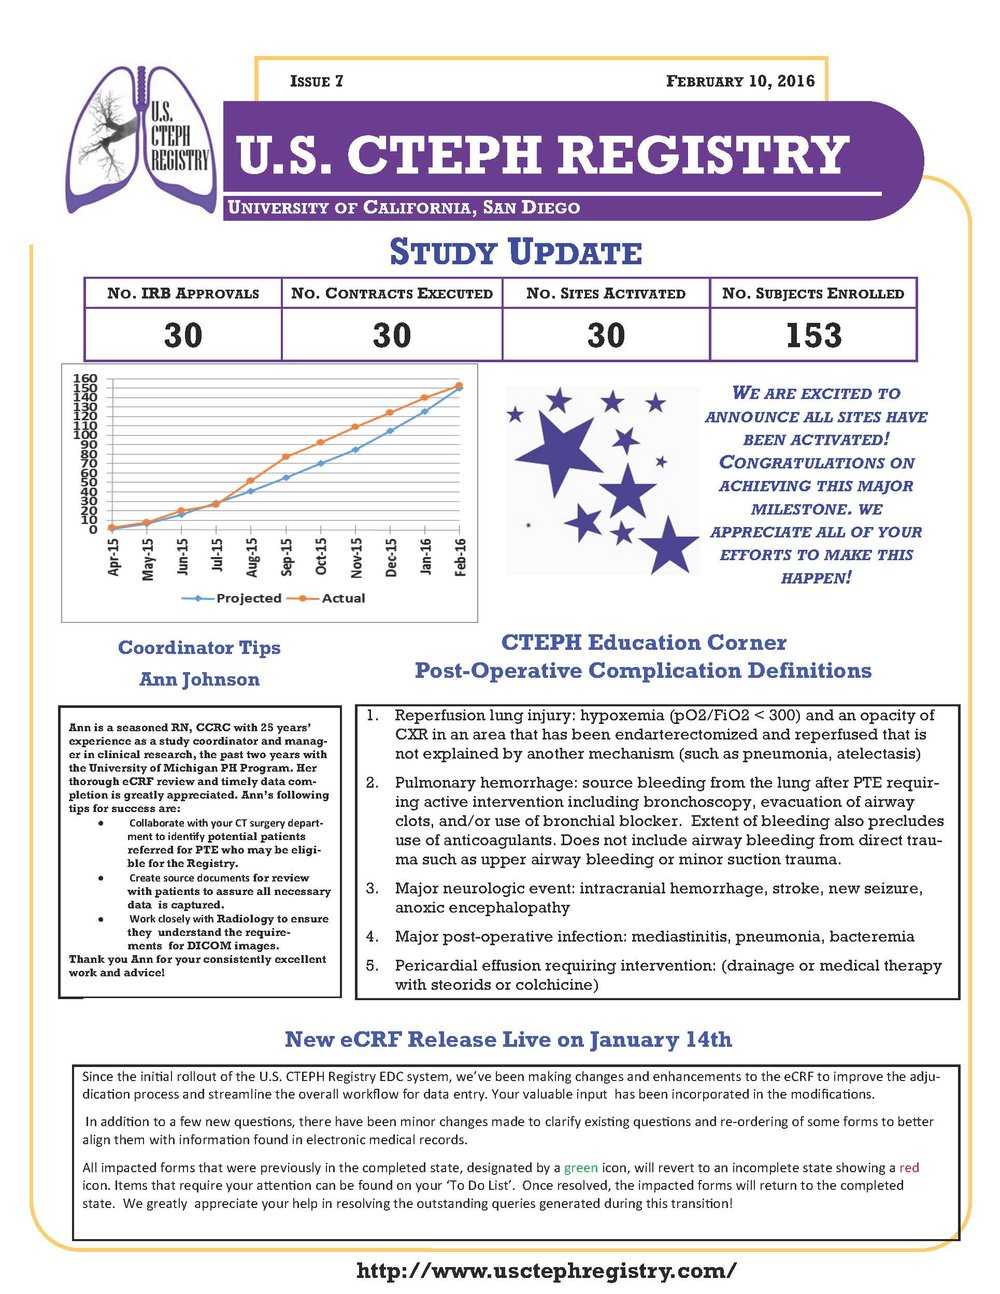 CTEPH Newsletter 2.10.2016_Page_1.jpg